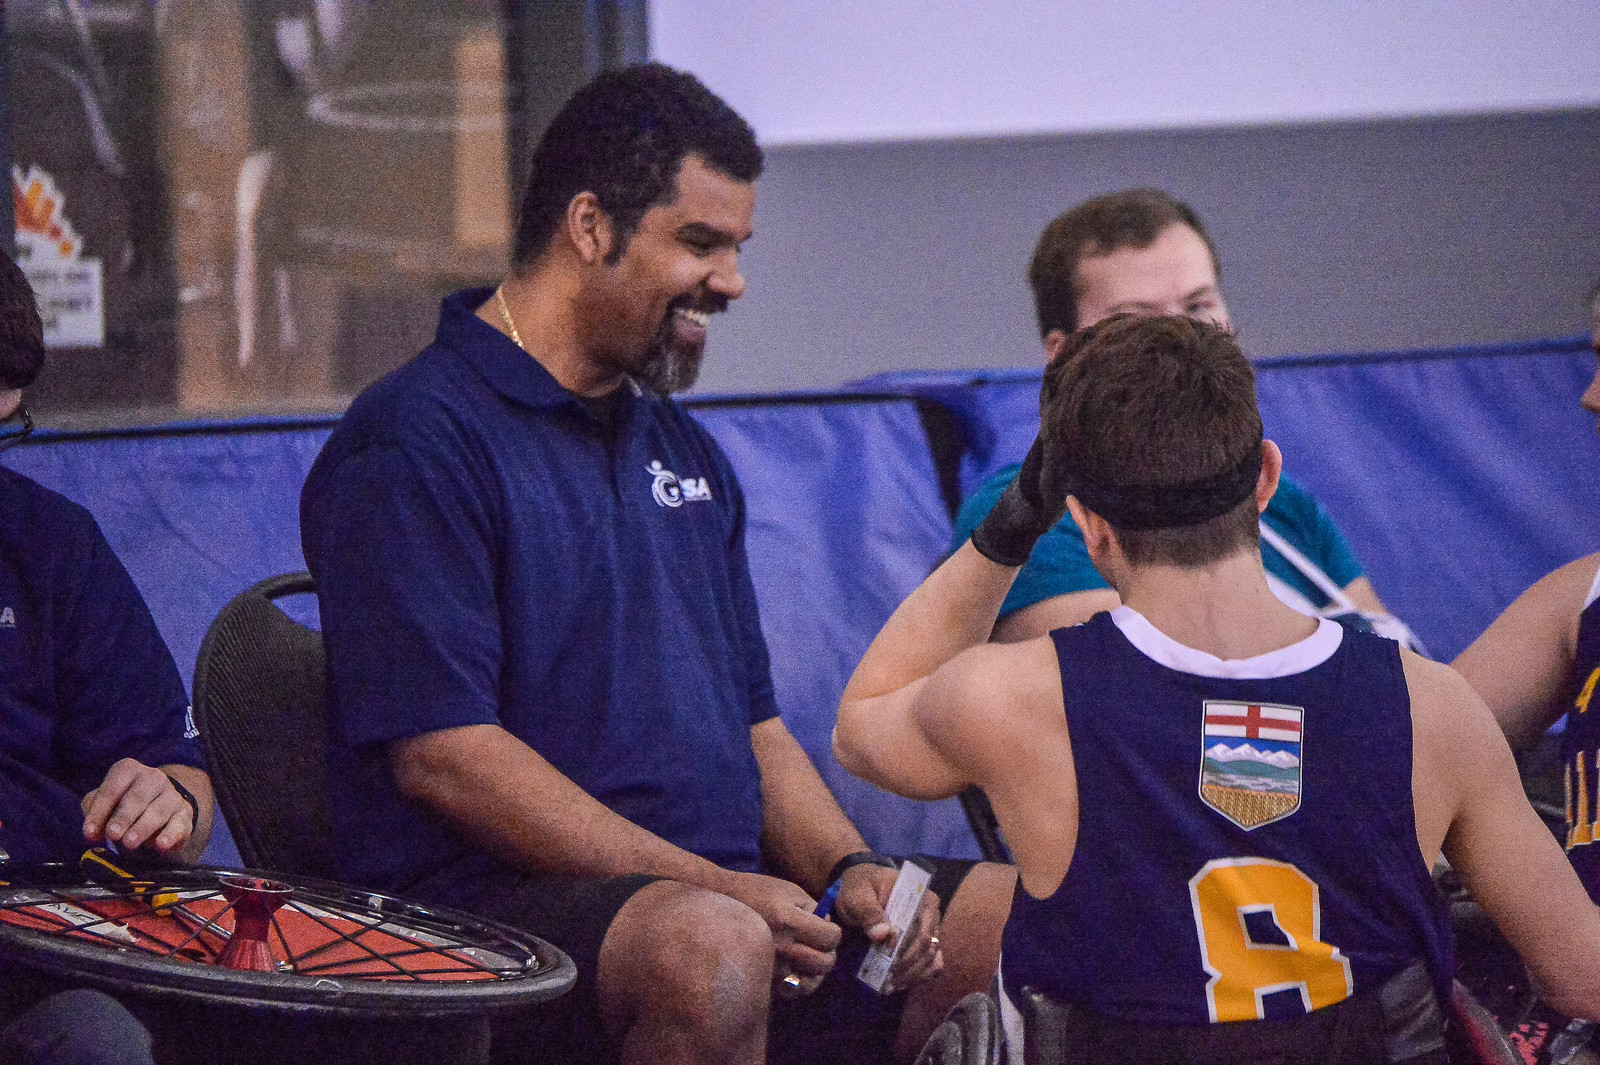 Meet Team AB Wheelchair Rugby Coach, Bruce Crosby Jr.